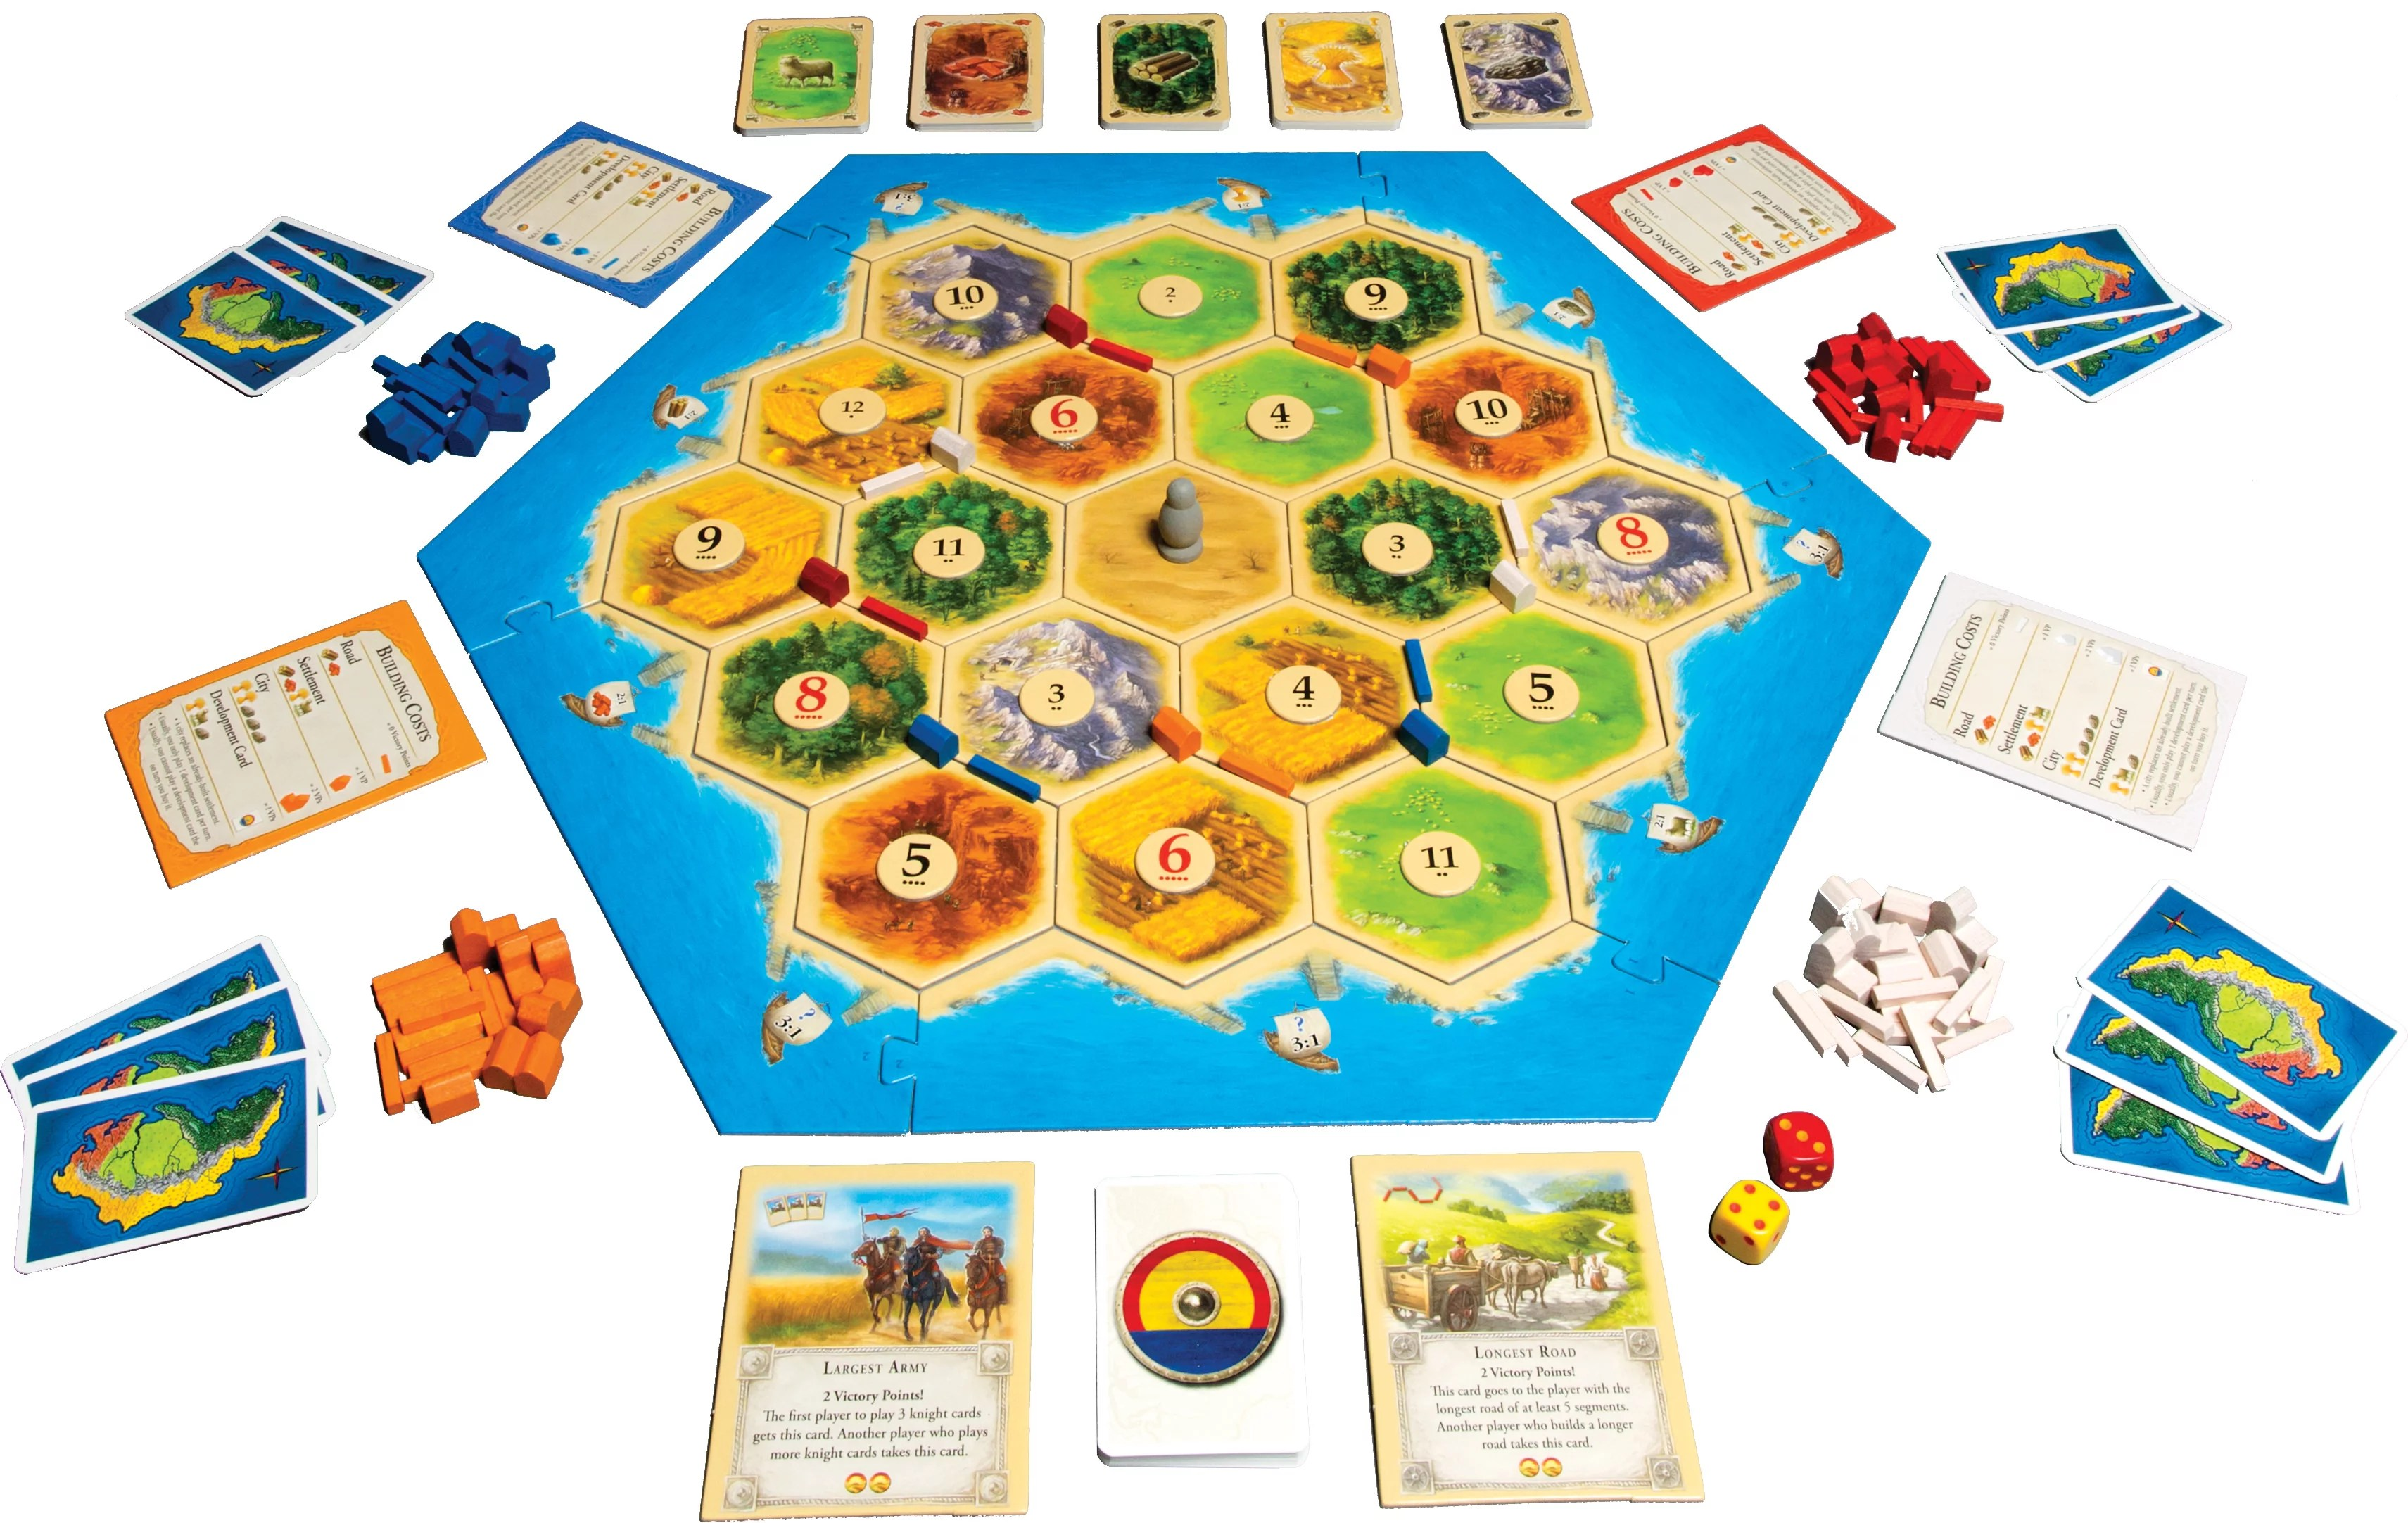 catan strategy board game